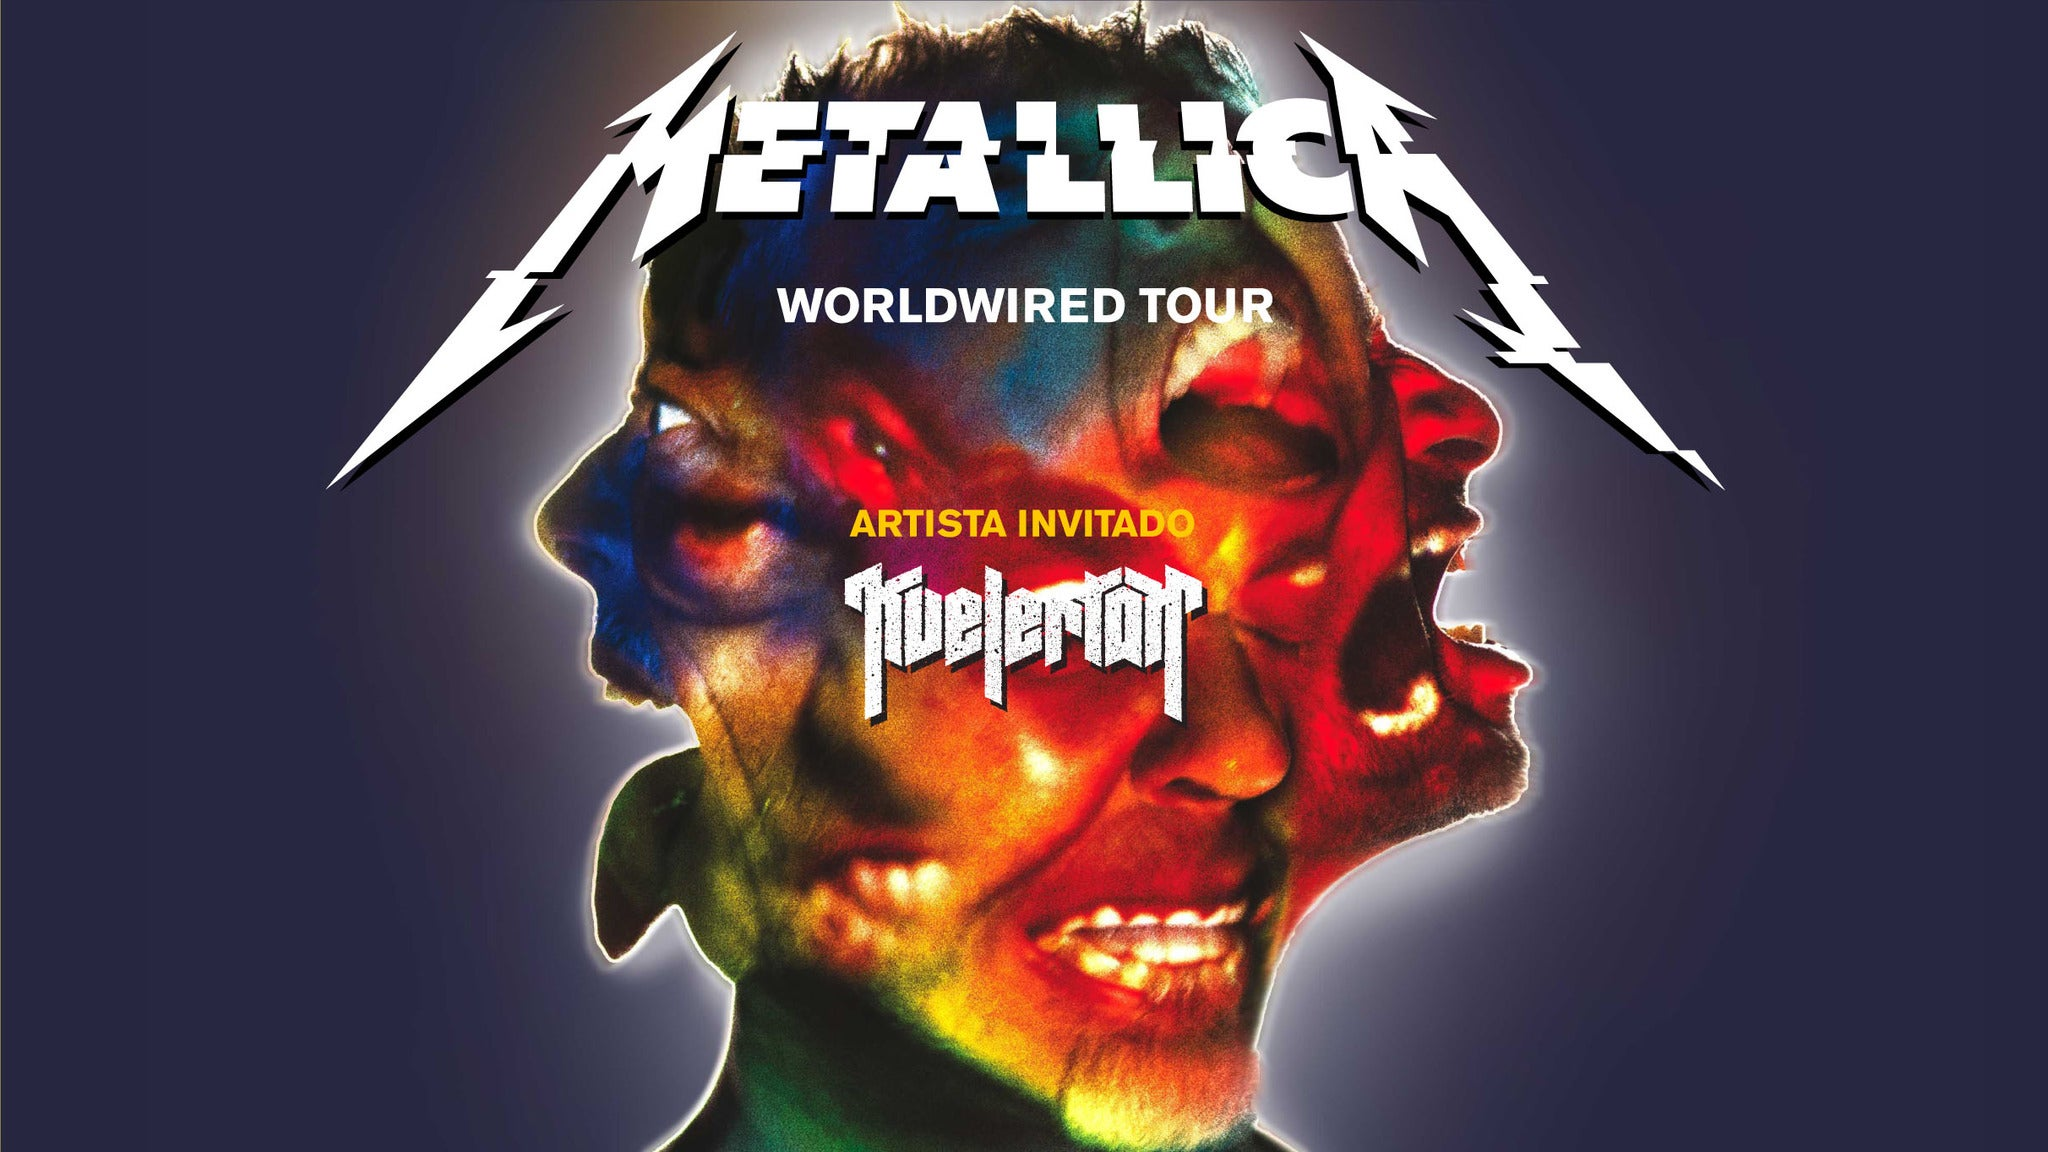 Metallica - WorldWired Tour at Alerus Center